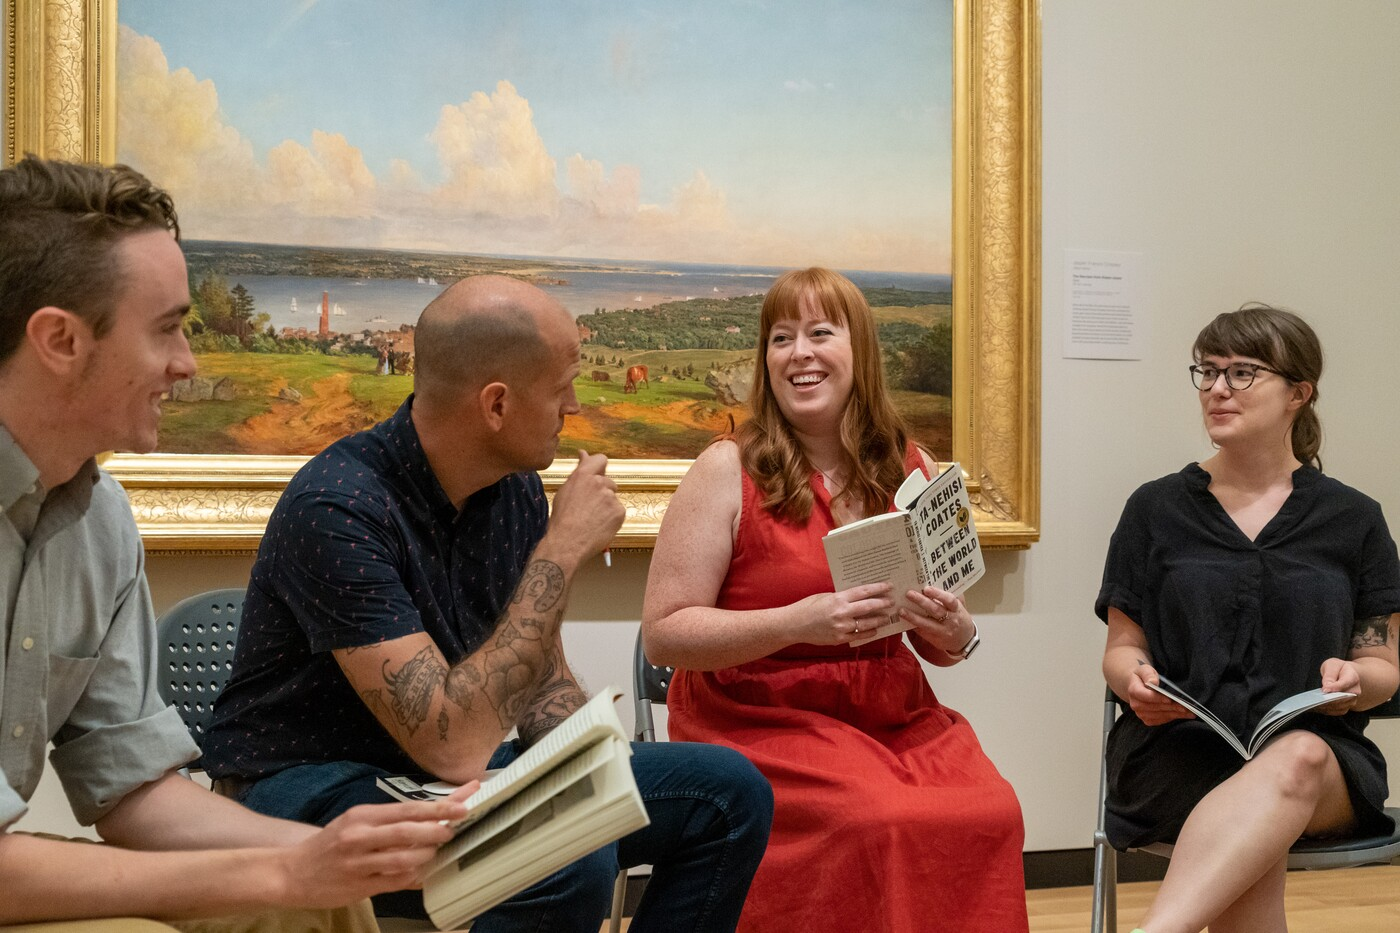 book club reading in an art gallery